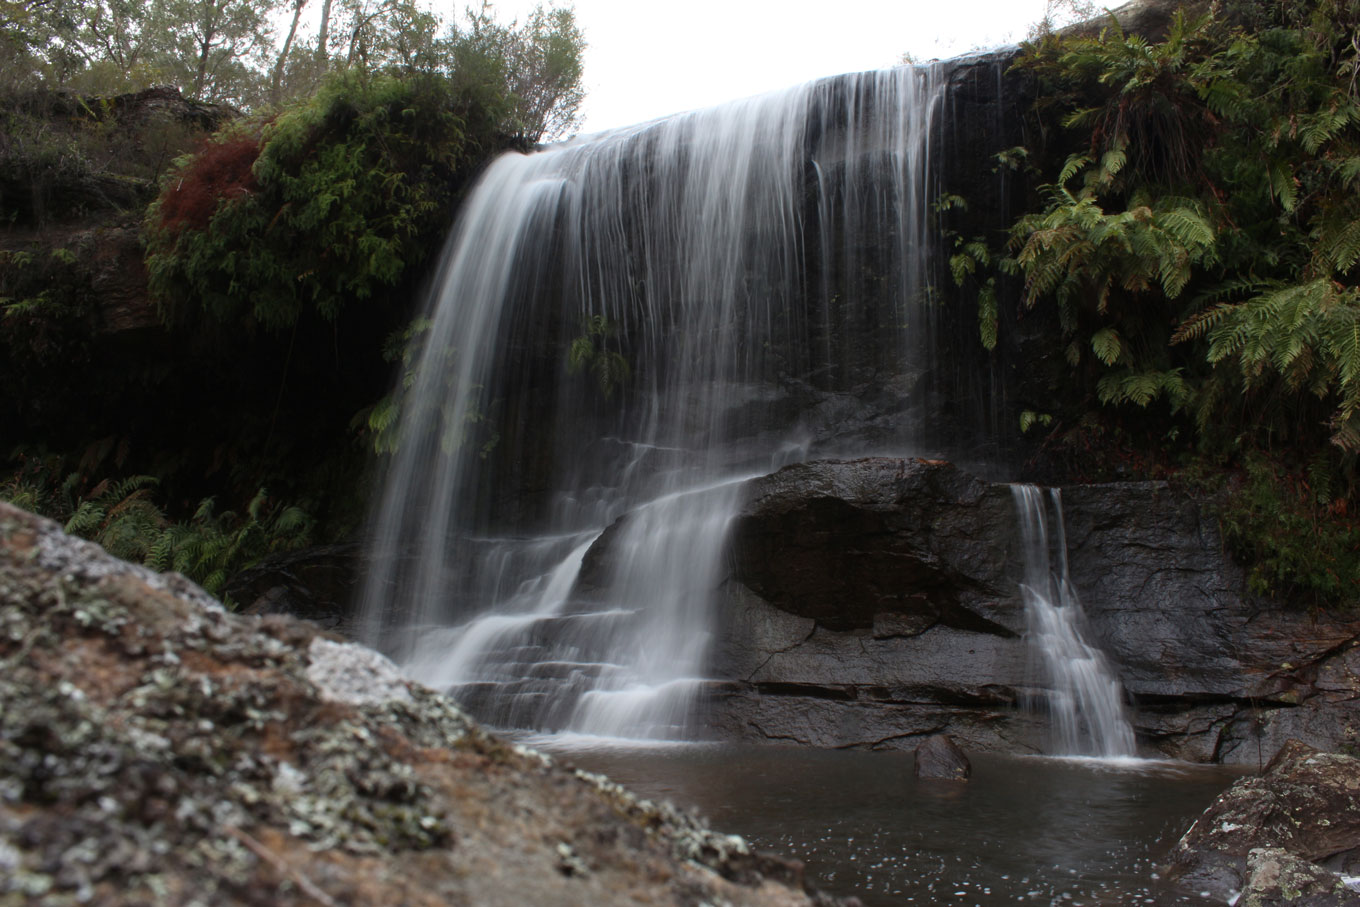 'Colo Vale Waterfall' © Bodhi Todd